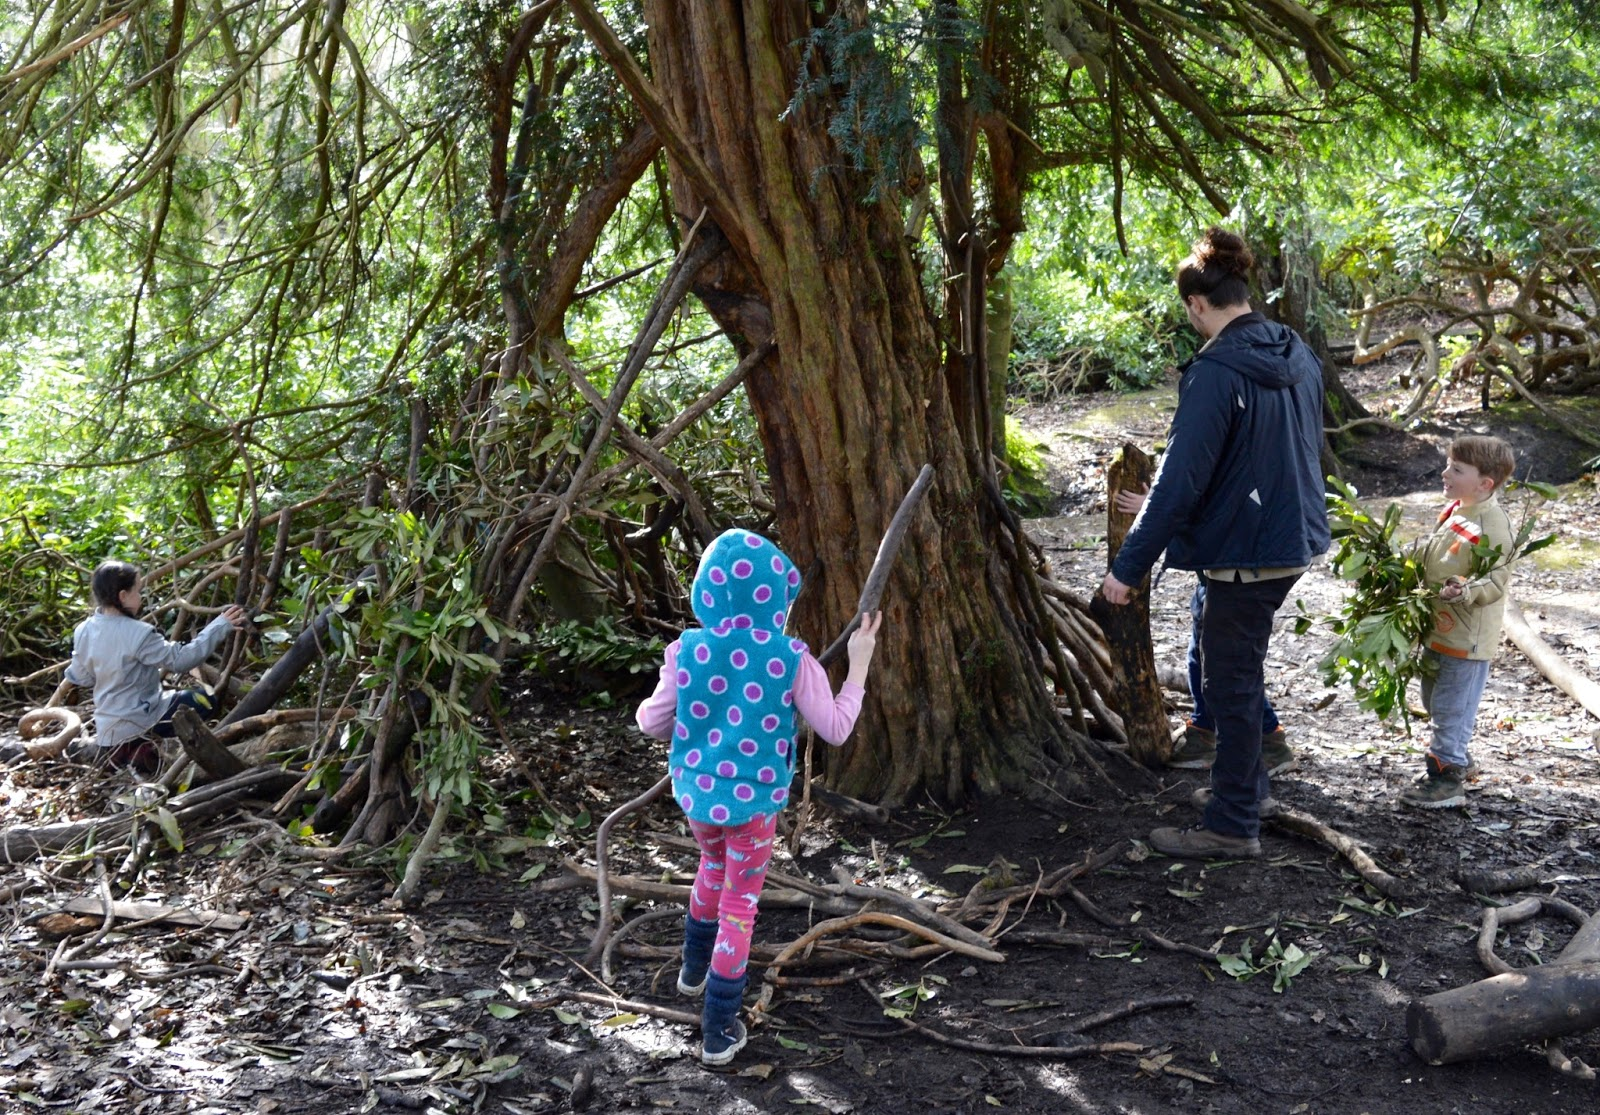 Beamish Wild   School Holiday Club & Activities in County Durham   North East England - den building in woods